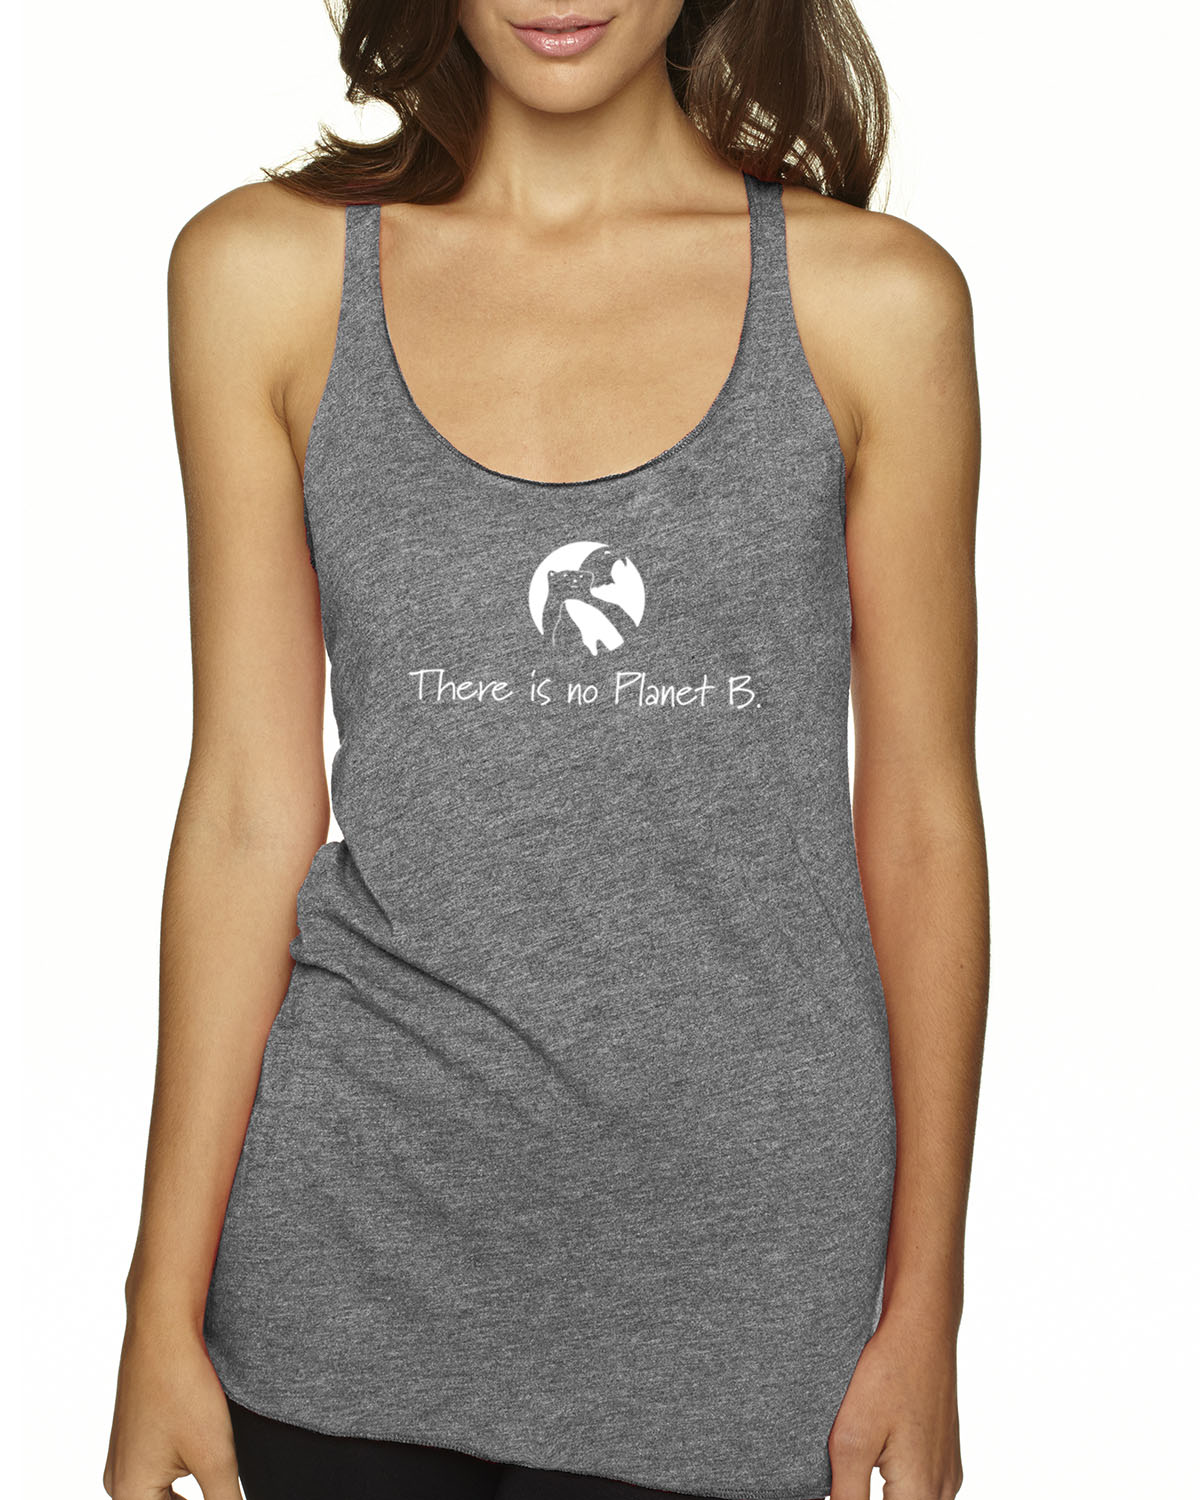 There is No Planet B tri-blend racer-back tank top (heather gray)